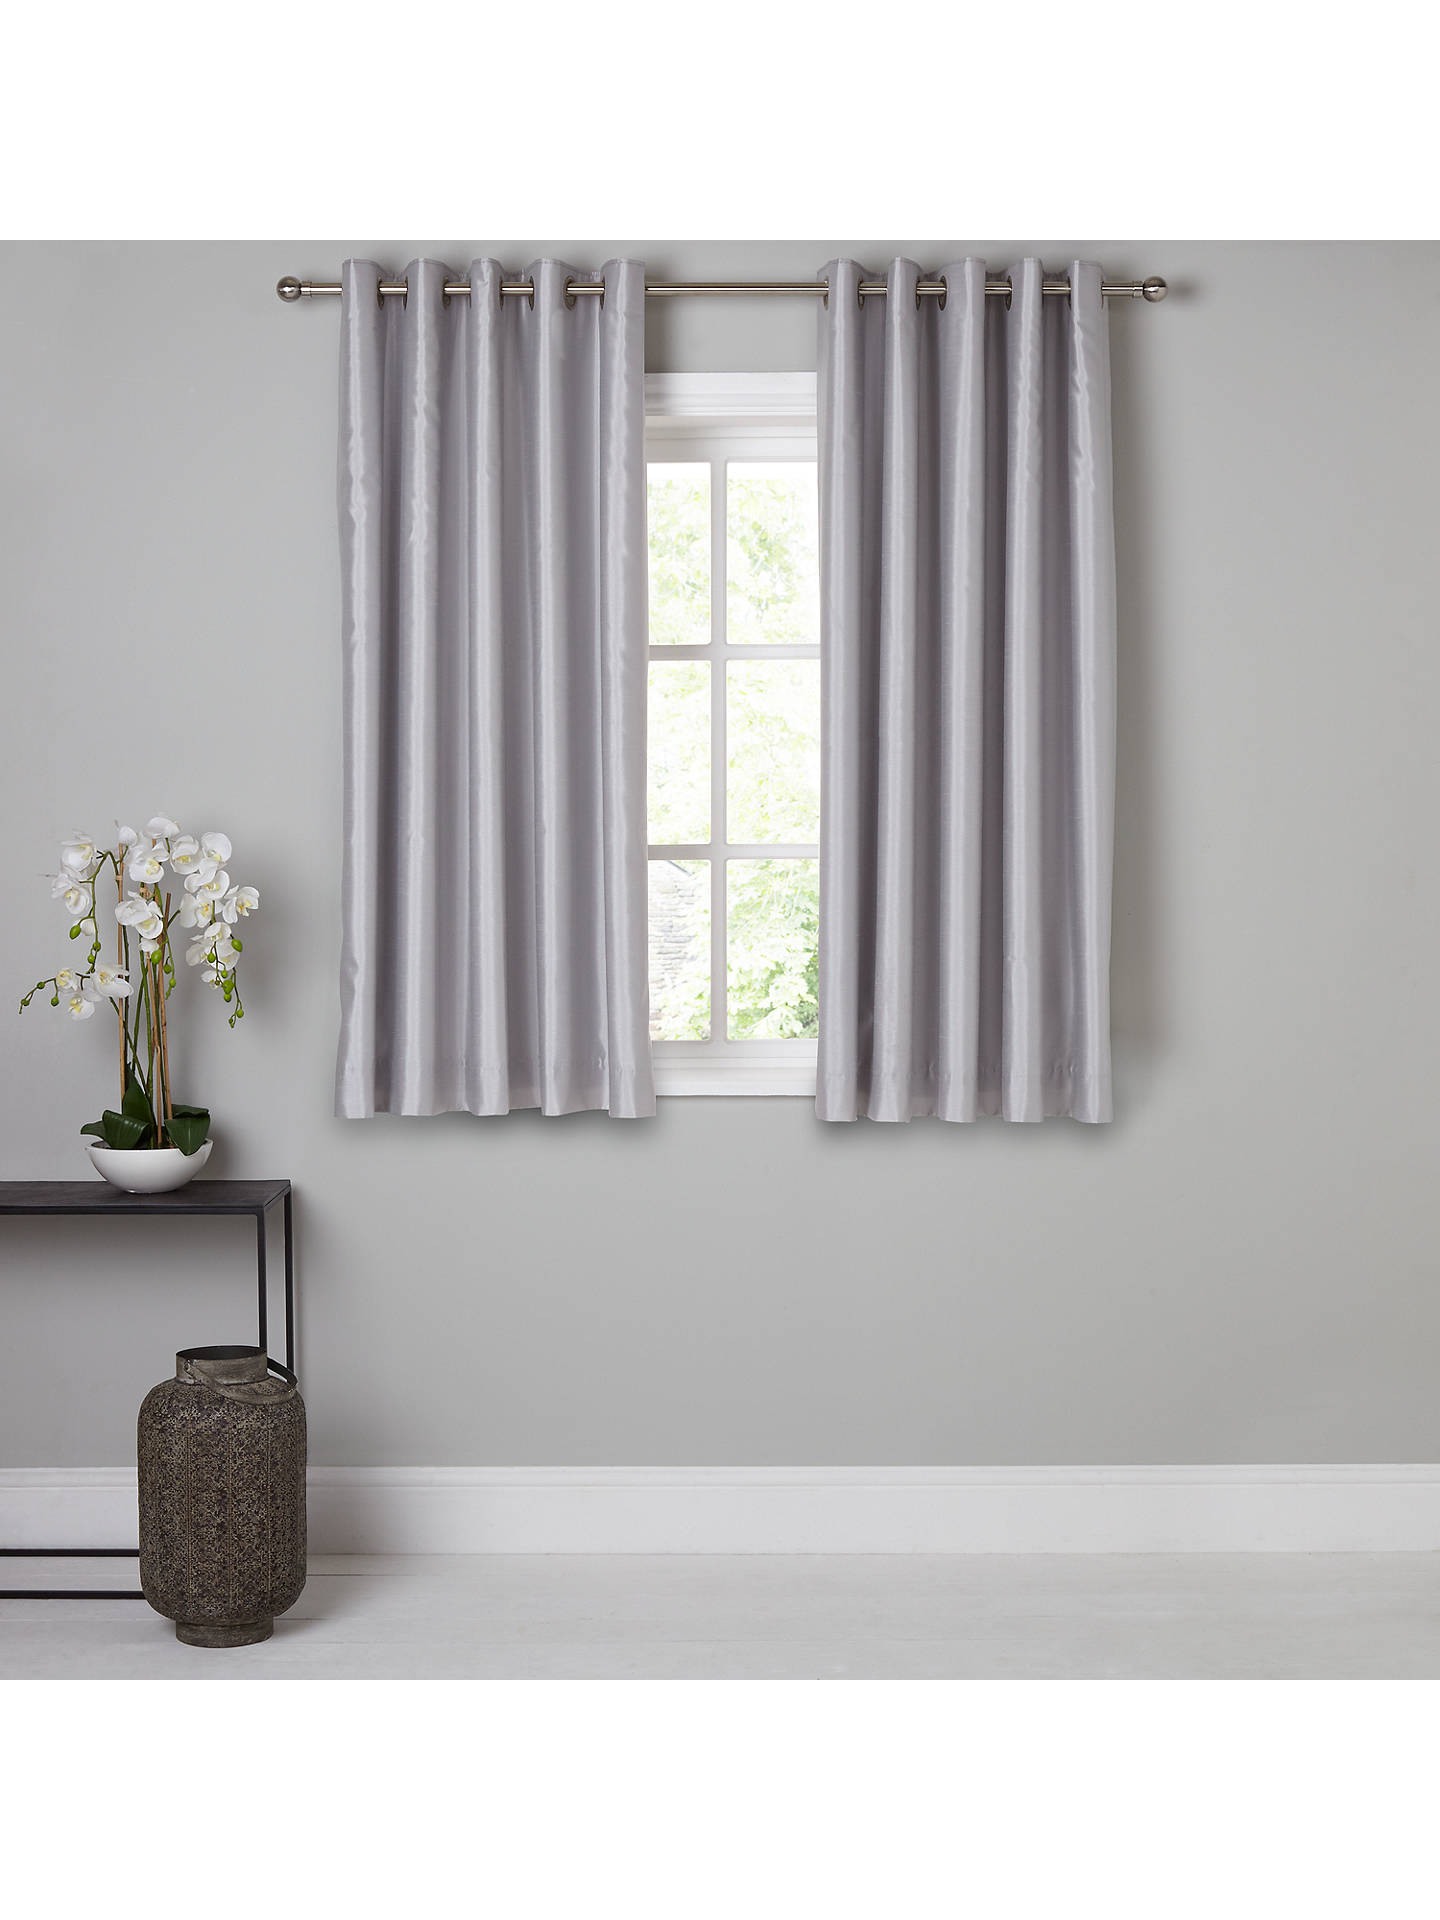 BuyJohn Lewis & Partners Faux Silk Pair Blackout Lined Eyelet Curtains, Blue Grey, W167 x Drop 137cm Online at johnlewis.com